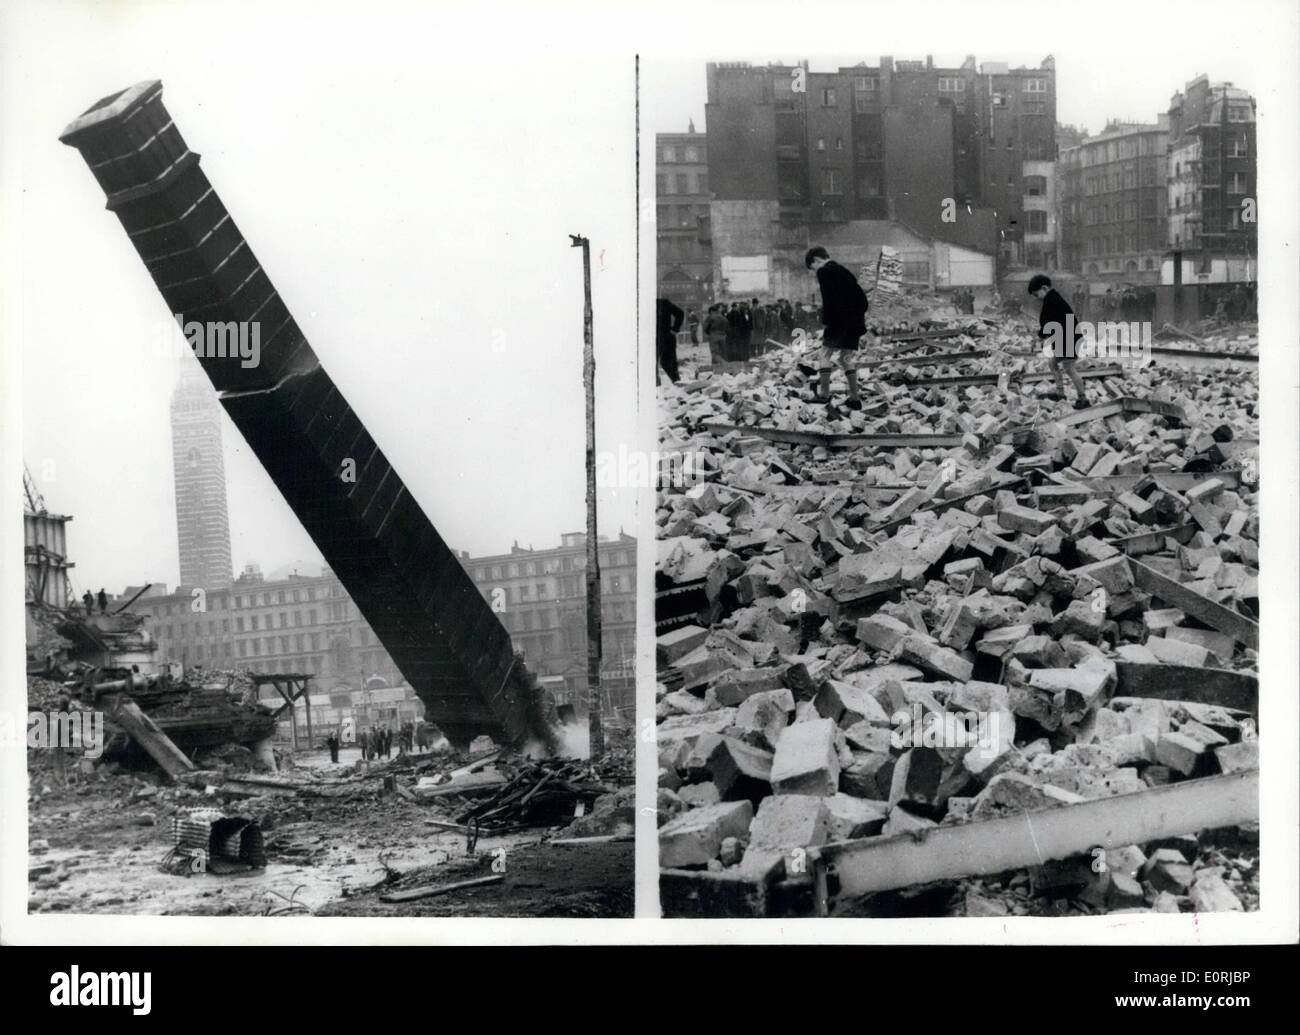 Nov. 11, 1959 - 120-feet-high Brewery Chimney-stack is demolished in London: A 120-feet-high chimney stack, erected in 1912, was demolished today at the Watney Mann Stag Brewery at Victoris, London. The chimney, one of three, are being demolished on this site to make way for development. There has been a brewery on this site for at least 300 years, the first called the Stag Brewery, was built in the second half of the 17th century. Photo shows two scenes during the demolition of the 120ft. high chimney - showing it half way down, and just as a huge pile of bricks and mortar. - Stock Image